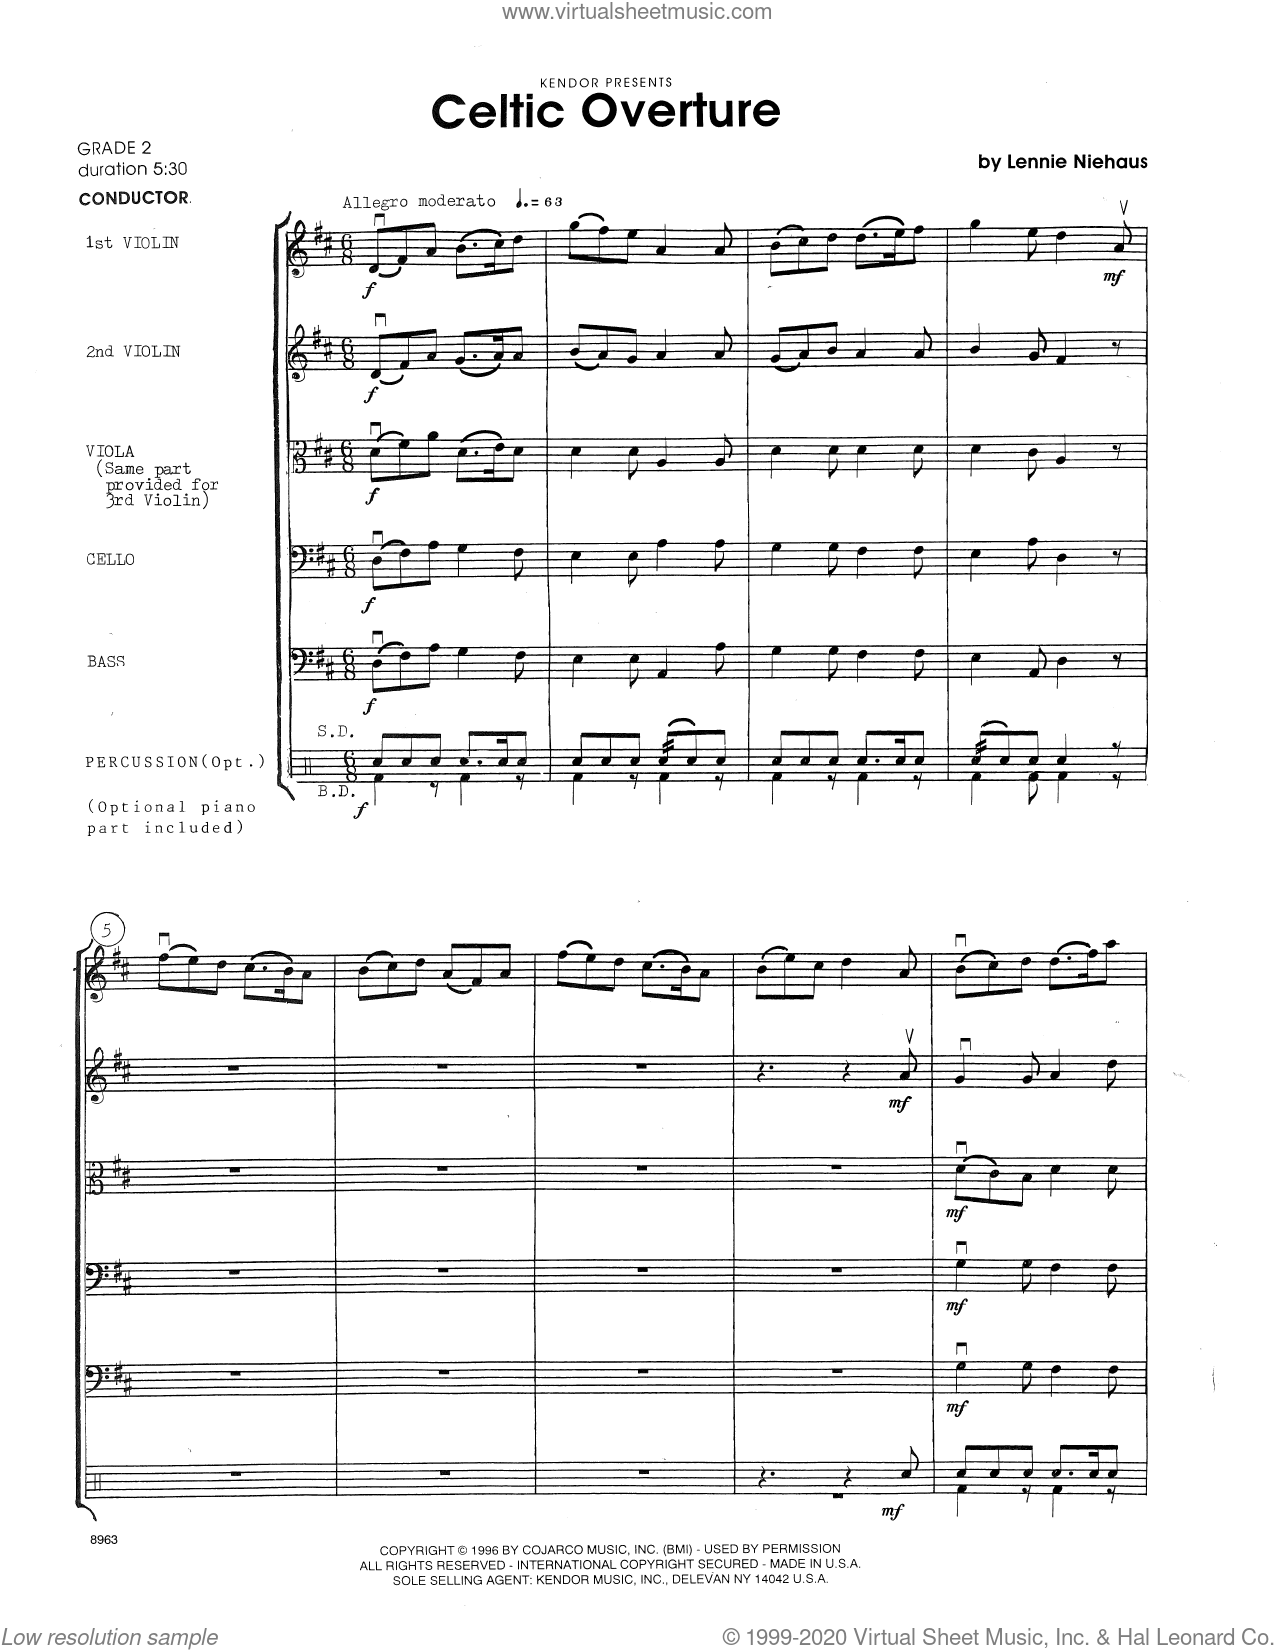 Celtic Overture (COMPLETE) sheet music for orchestra by Lennie Niehaus, intermediate skill level